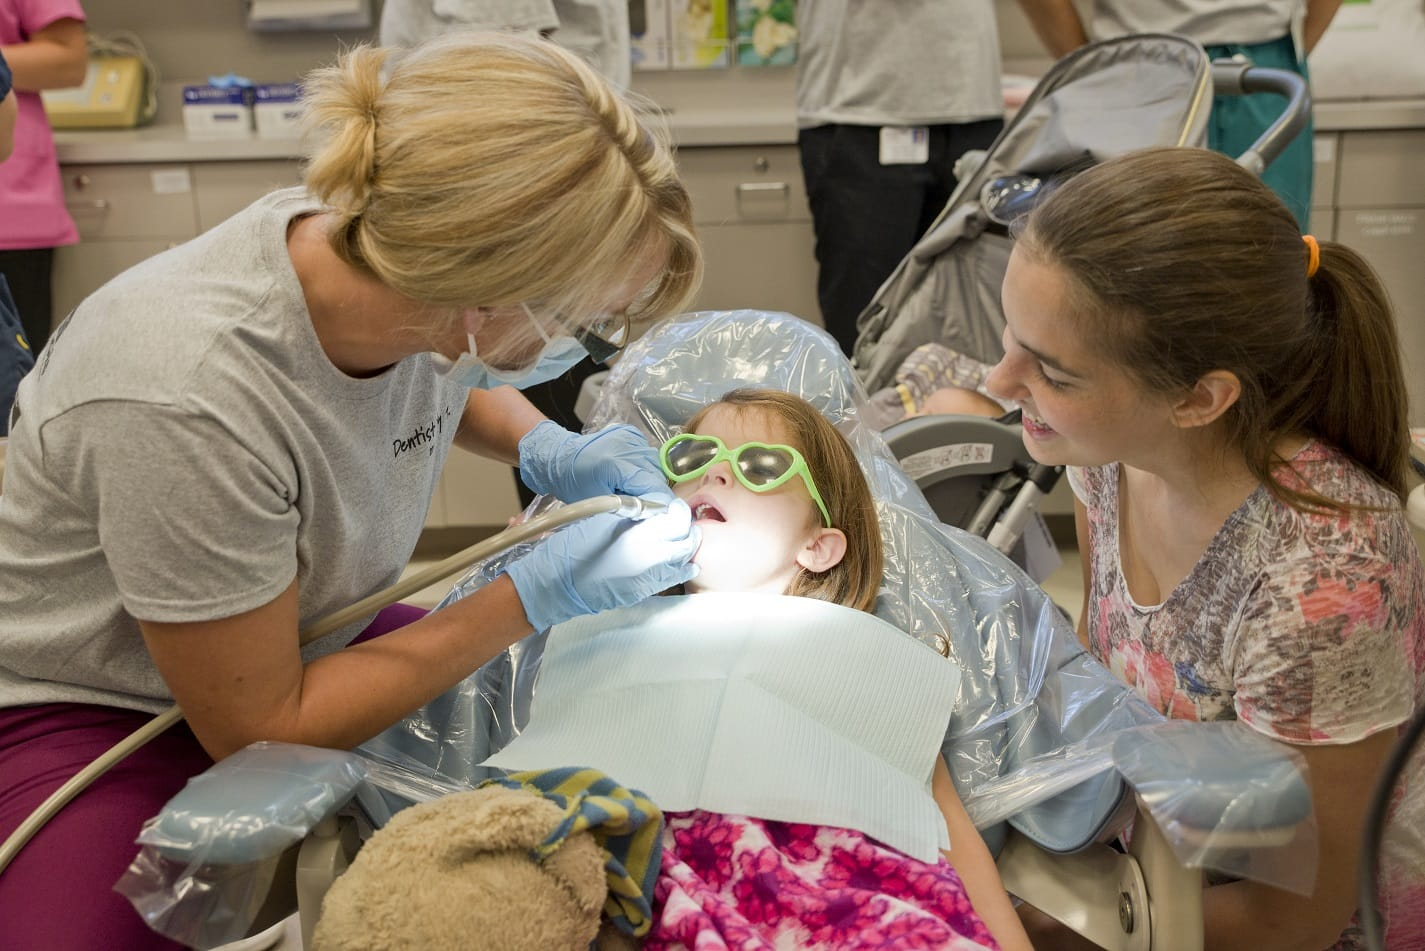 Dentist by 1 event on July 31 in Peoria